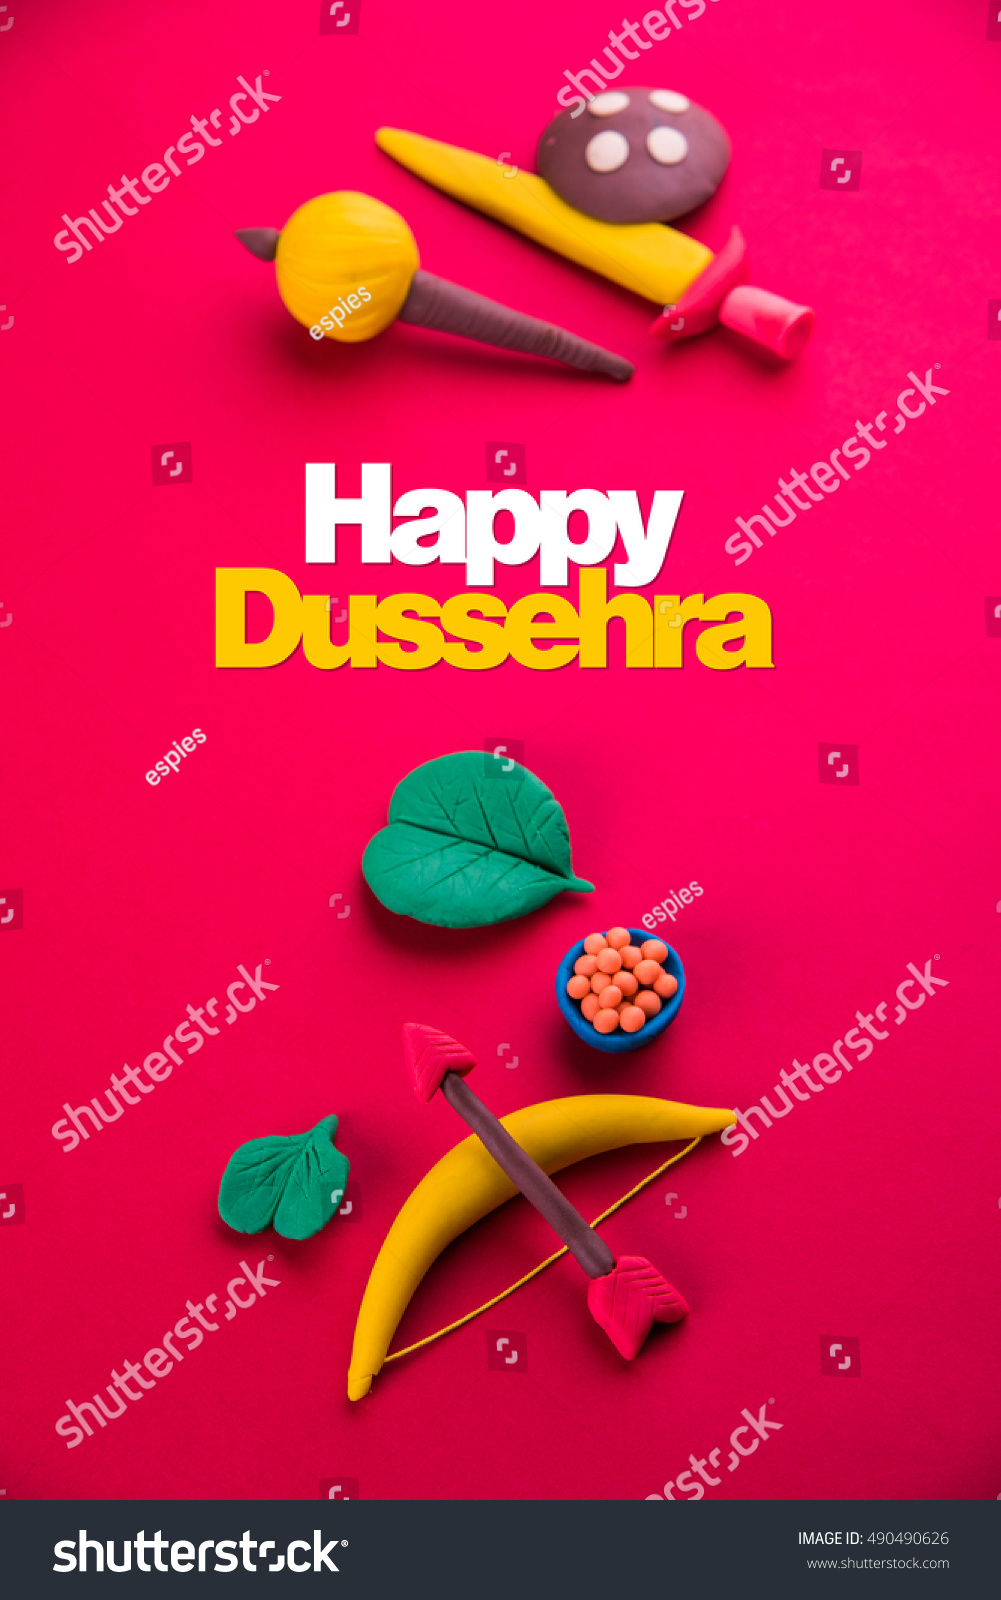 Royalty Free Happy Dussehra Ayudh Puja Greeting 490490626 Stock